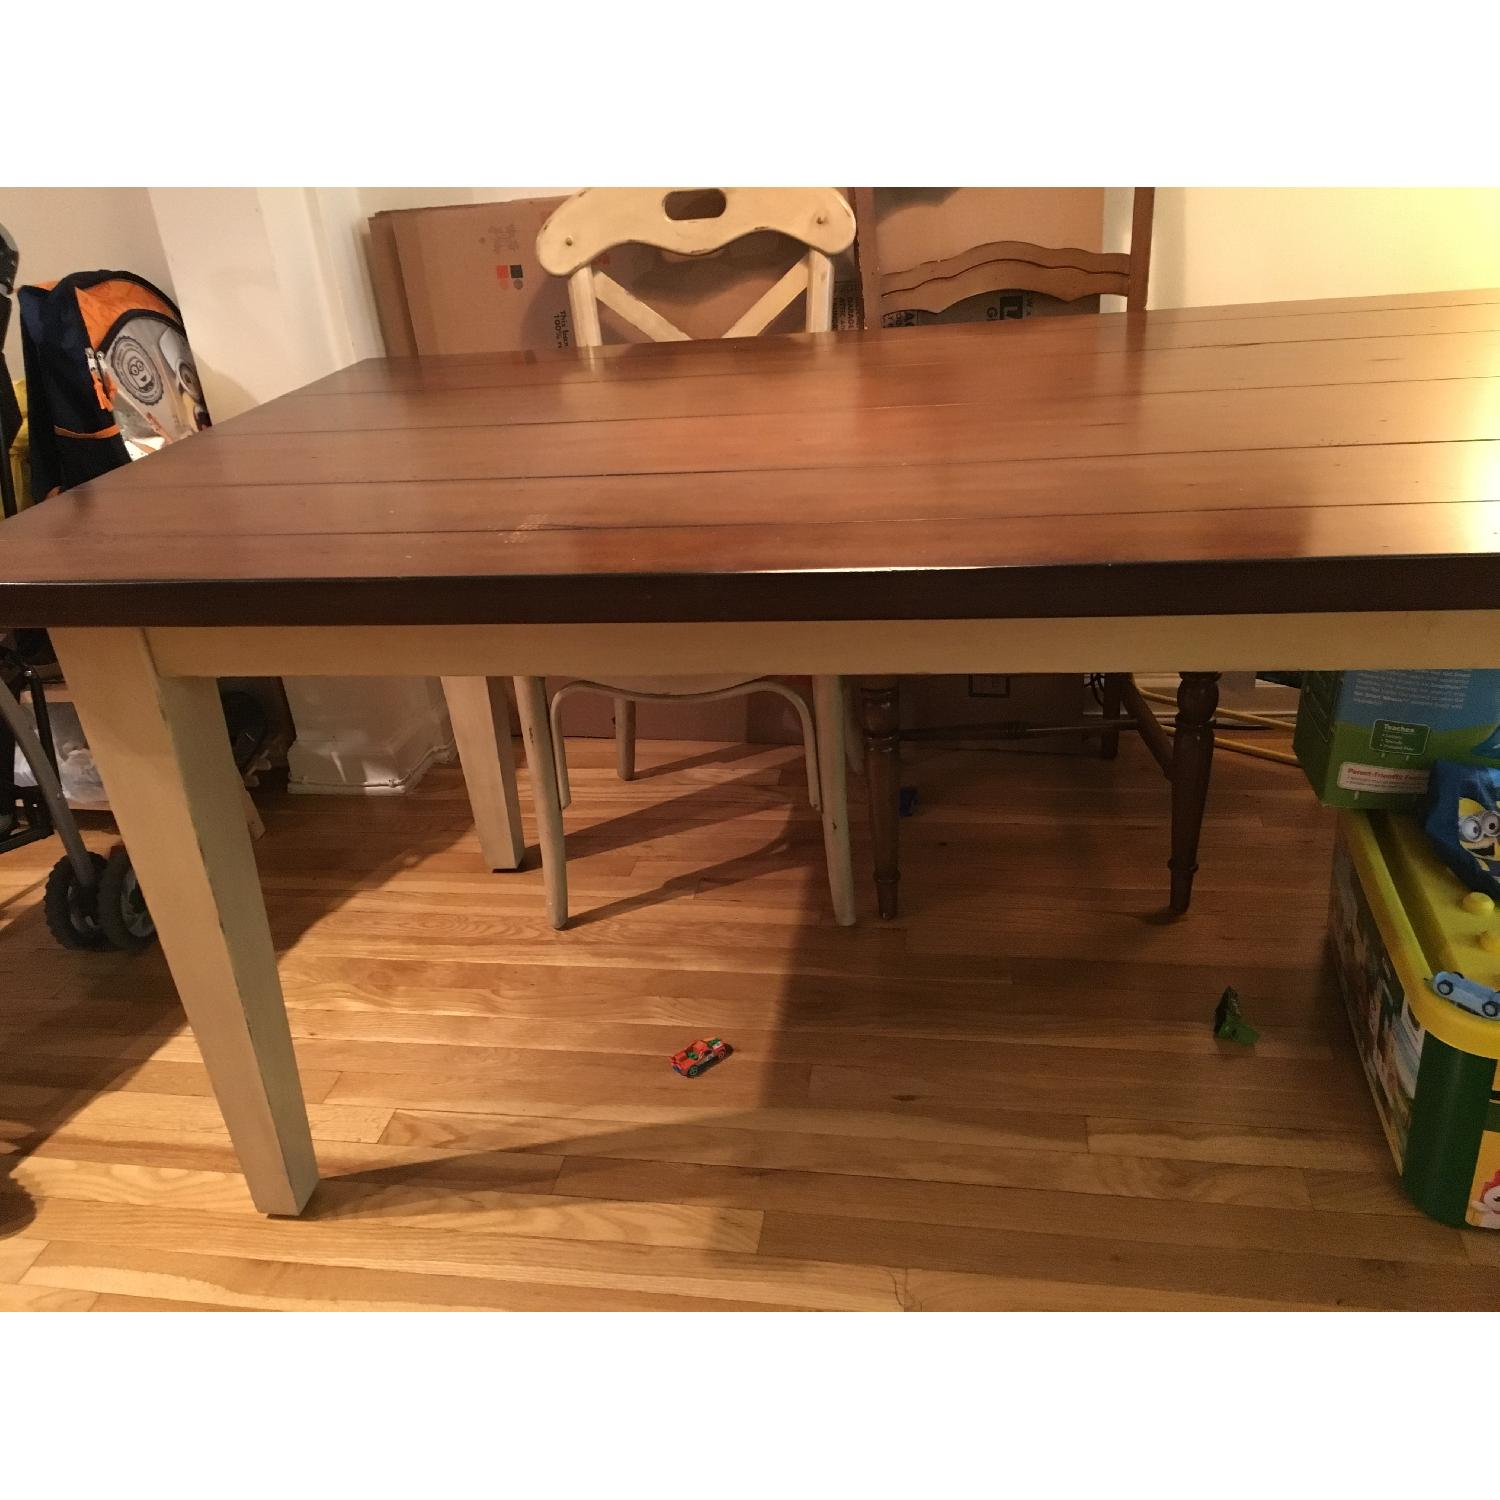 Pier 1 Dining Table in Antique Ivory - image-1